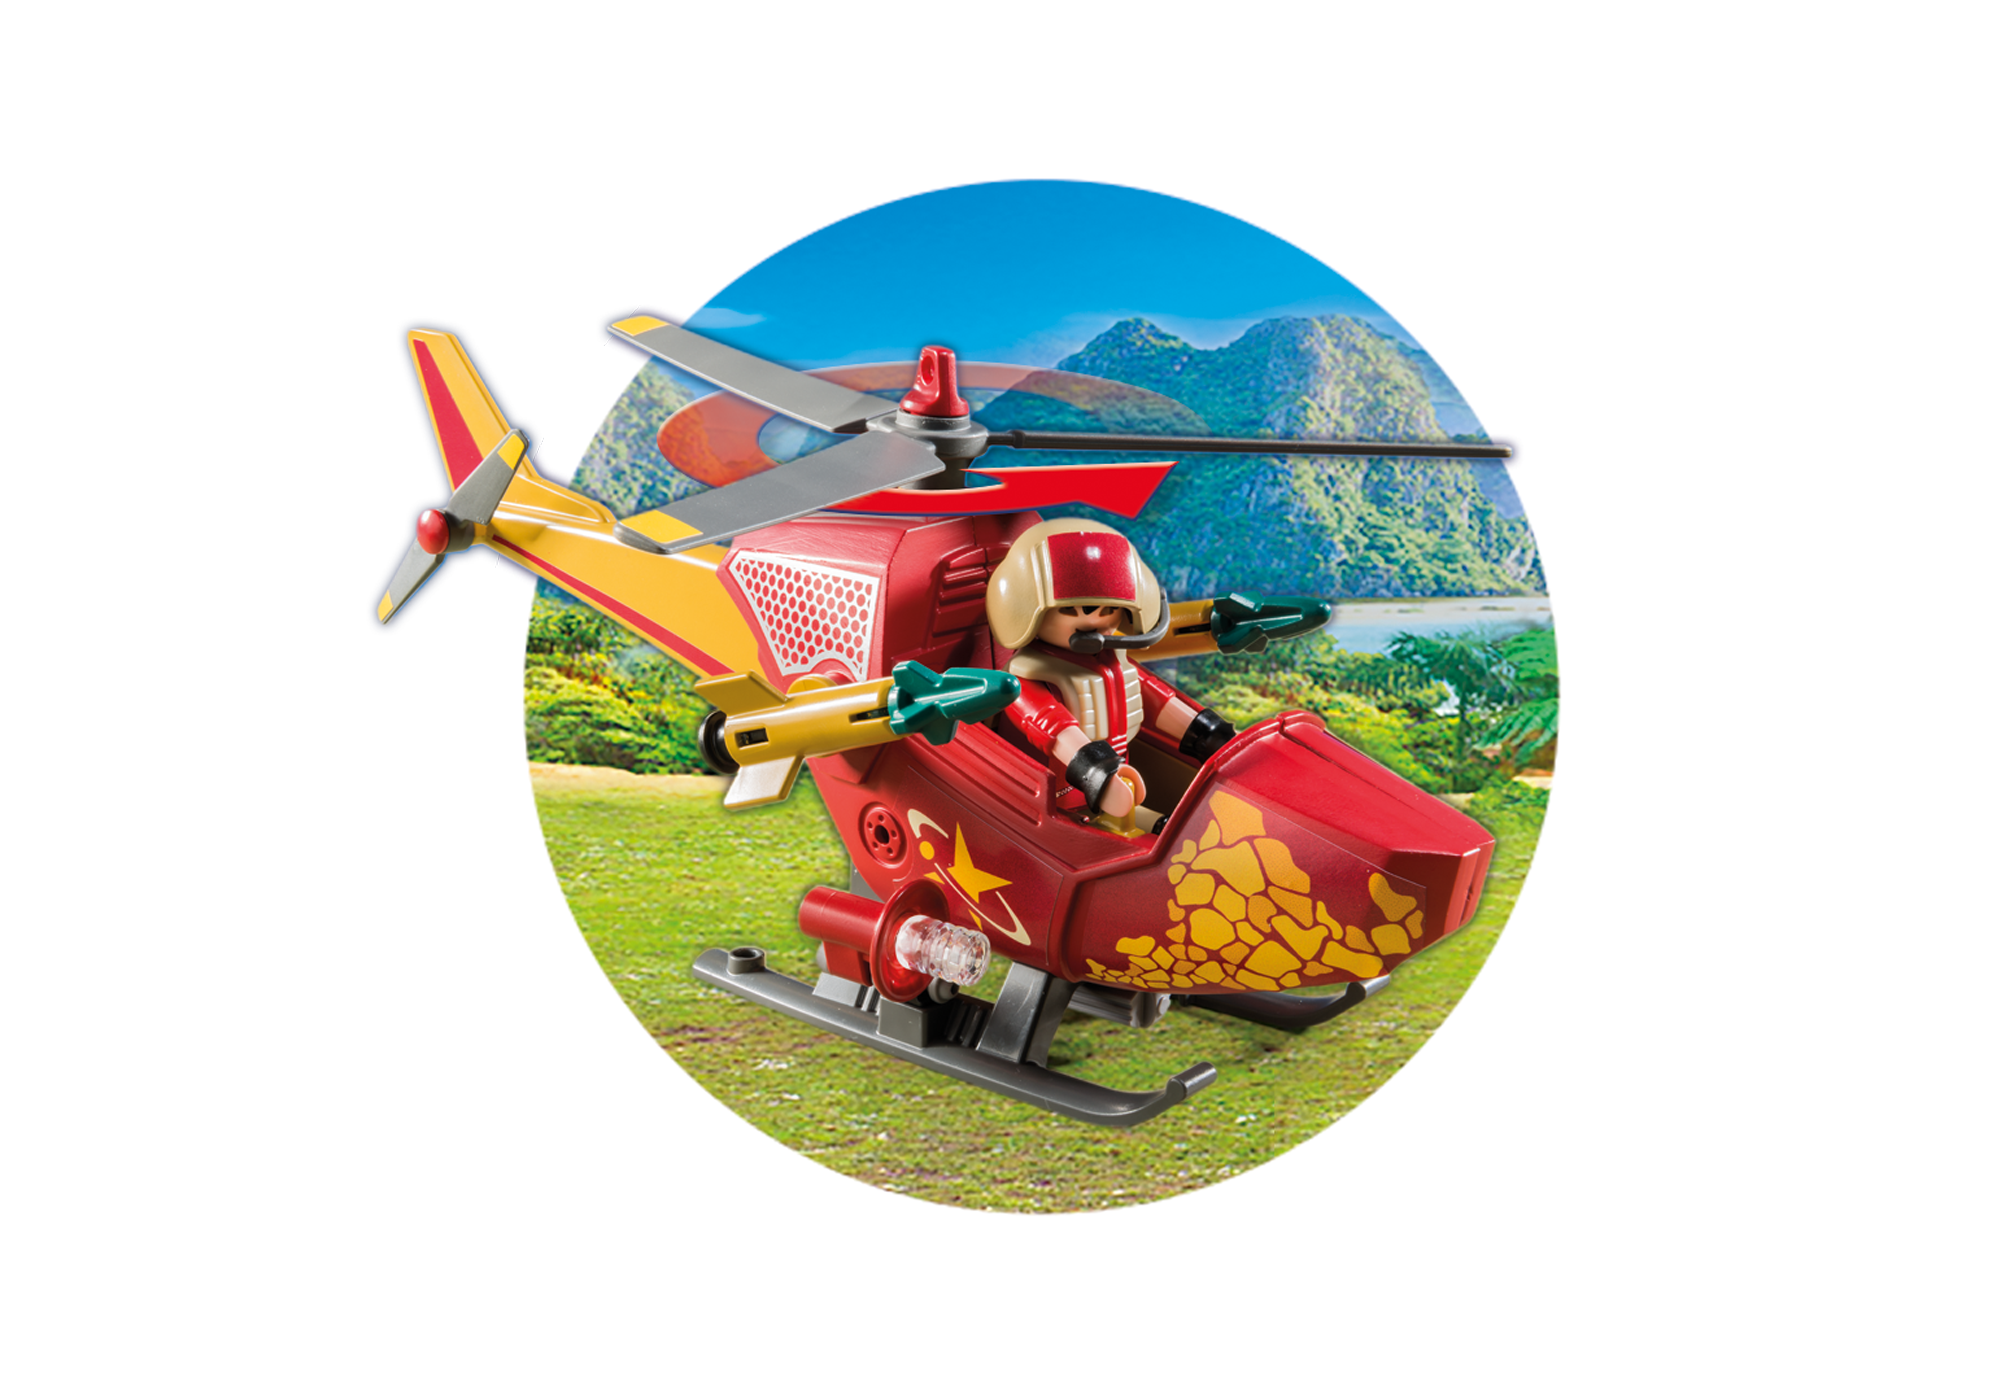 http://media.playmobil.com/i/playmobil/9430_product_extra3/Helikopter mit Flugsaurier